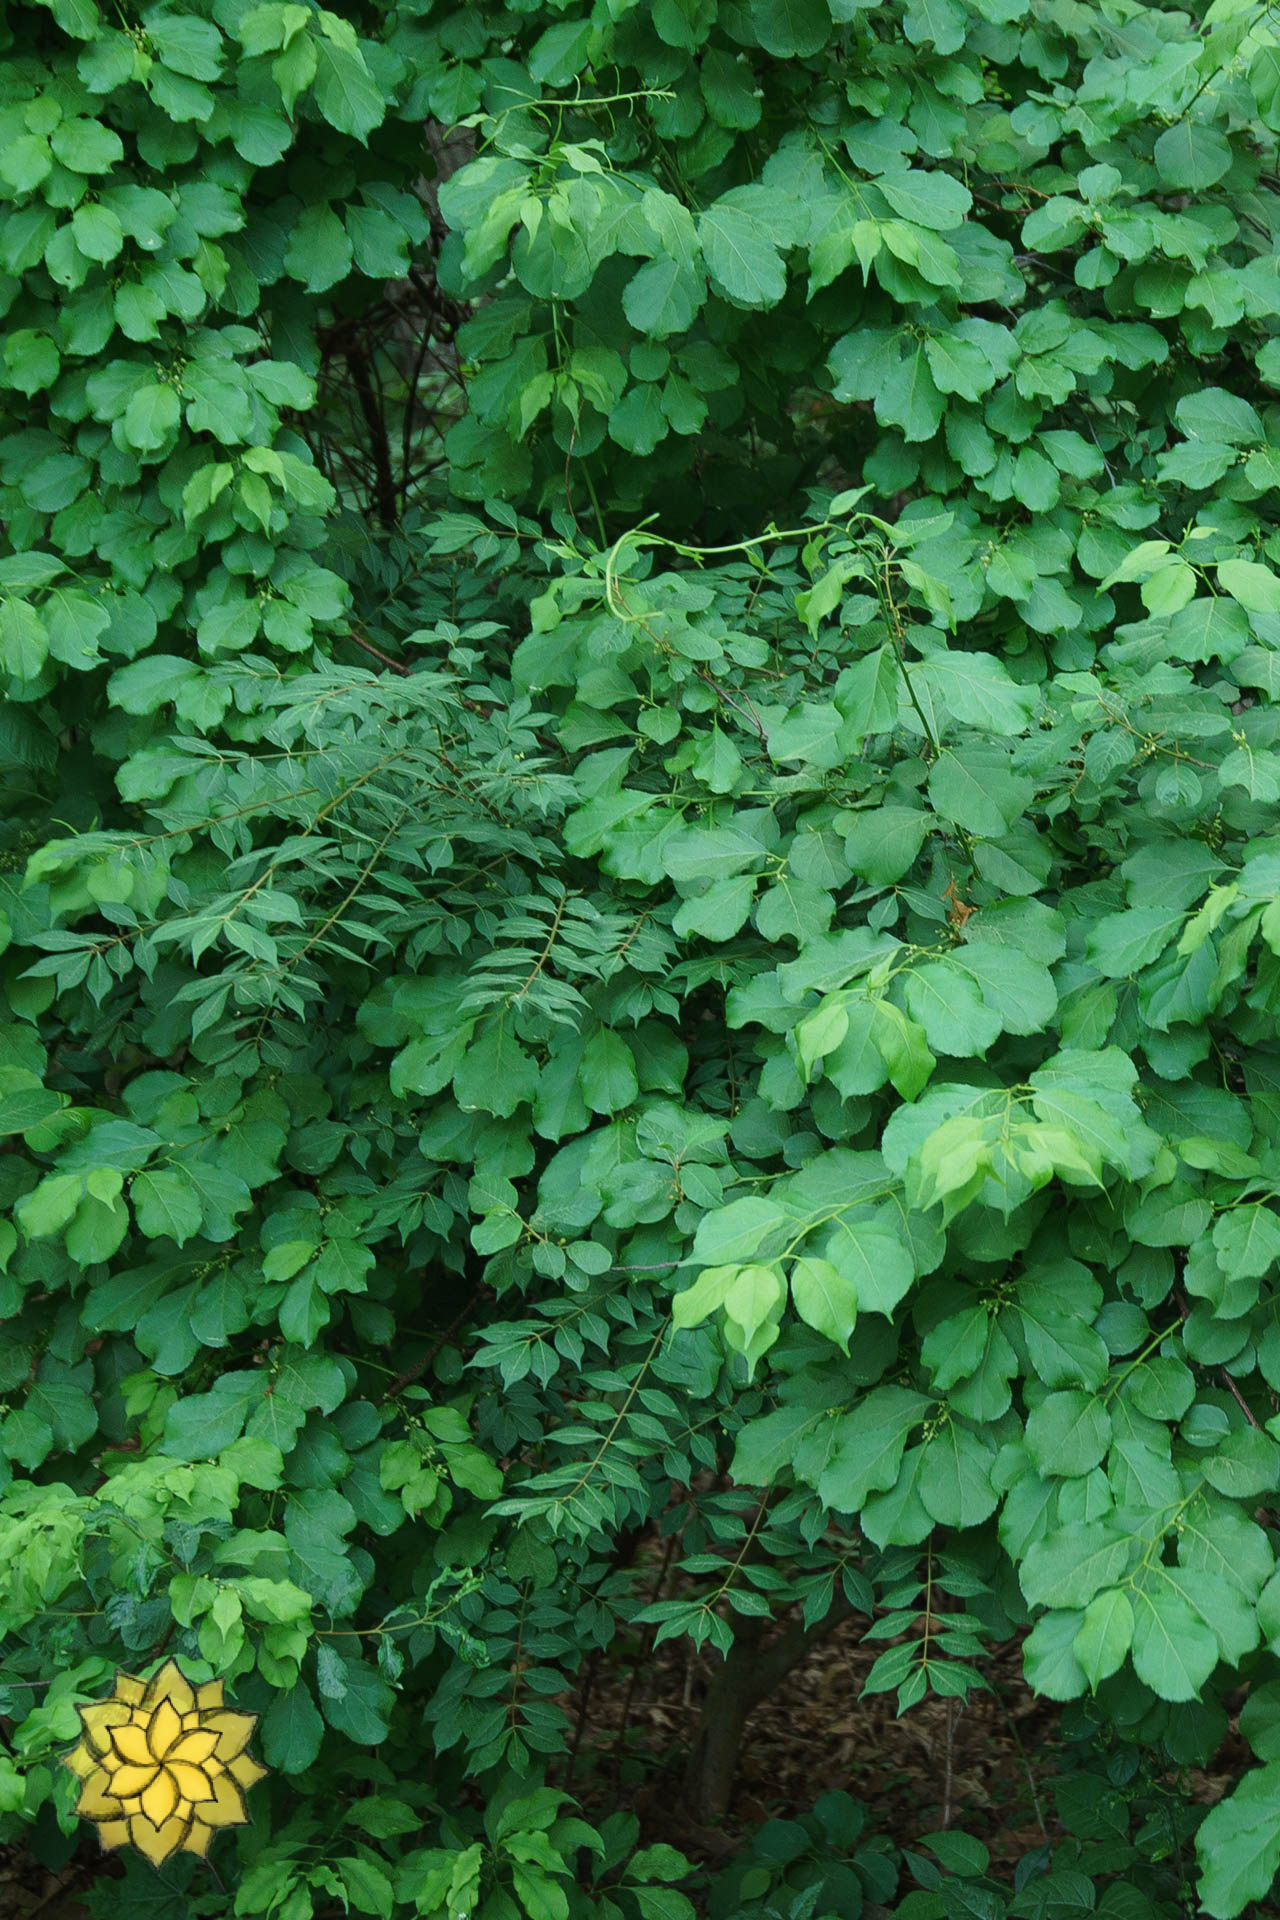 Invasive Plant Management - One of the most pressing issues our landscapes and ecosystems face is the ever expanding growth of invasive plants. Invasive plants form mono cultures in our ecosystems and threaten the diversity of our native plant life. As a result this has a detrimental impact on the biodiversity our landscapes can support. We follow best industry practices to control invasive growth in our landscapes and see invasive plant management as an integral component to our work in promoting native plants and maximizing biodiversity.